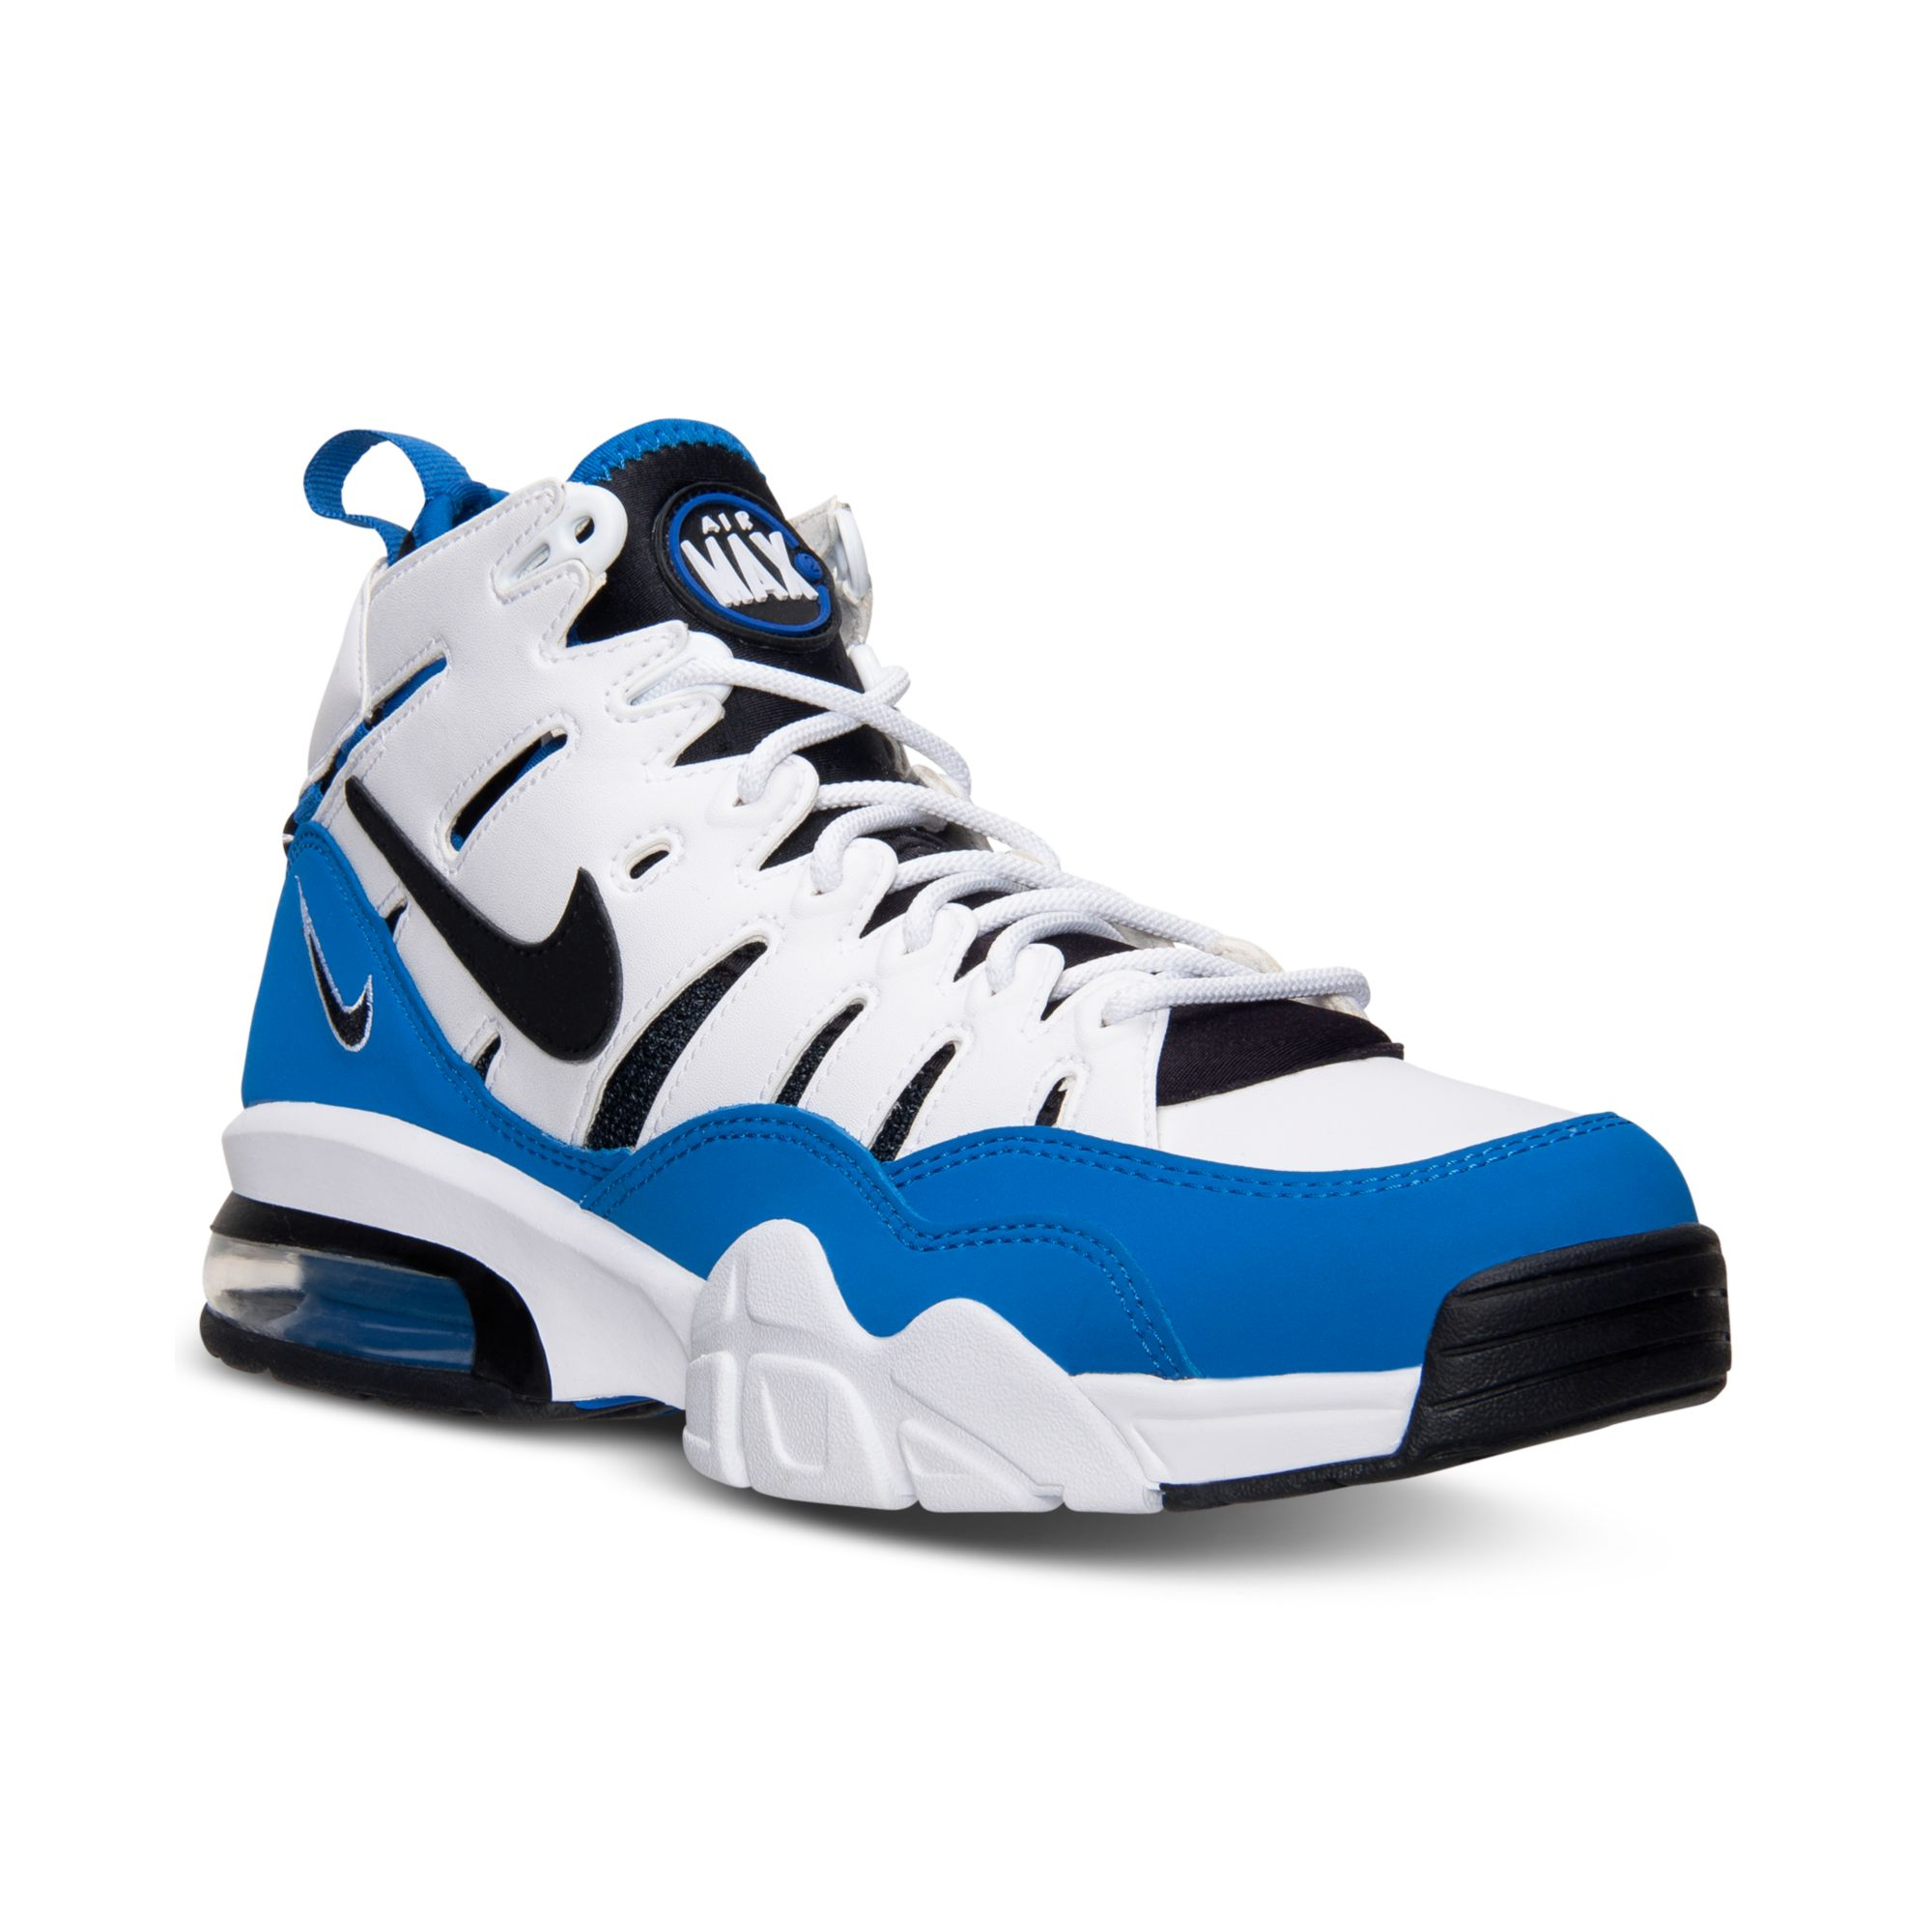 7c74d99468a2 Lyst - Nike Air Trainer Max 94 Training Sneakers in Blue for Men